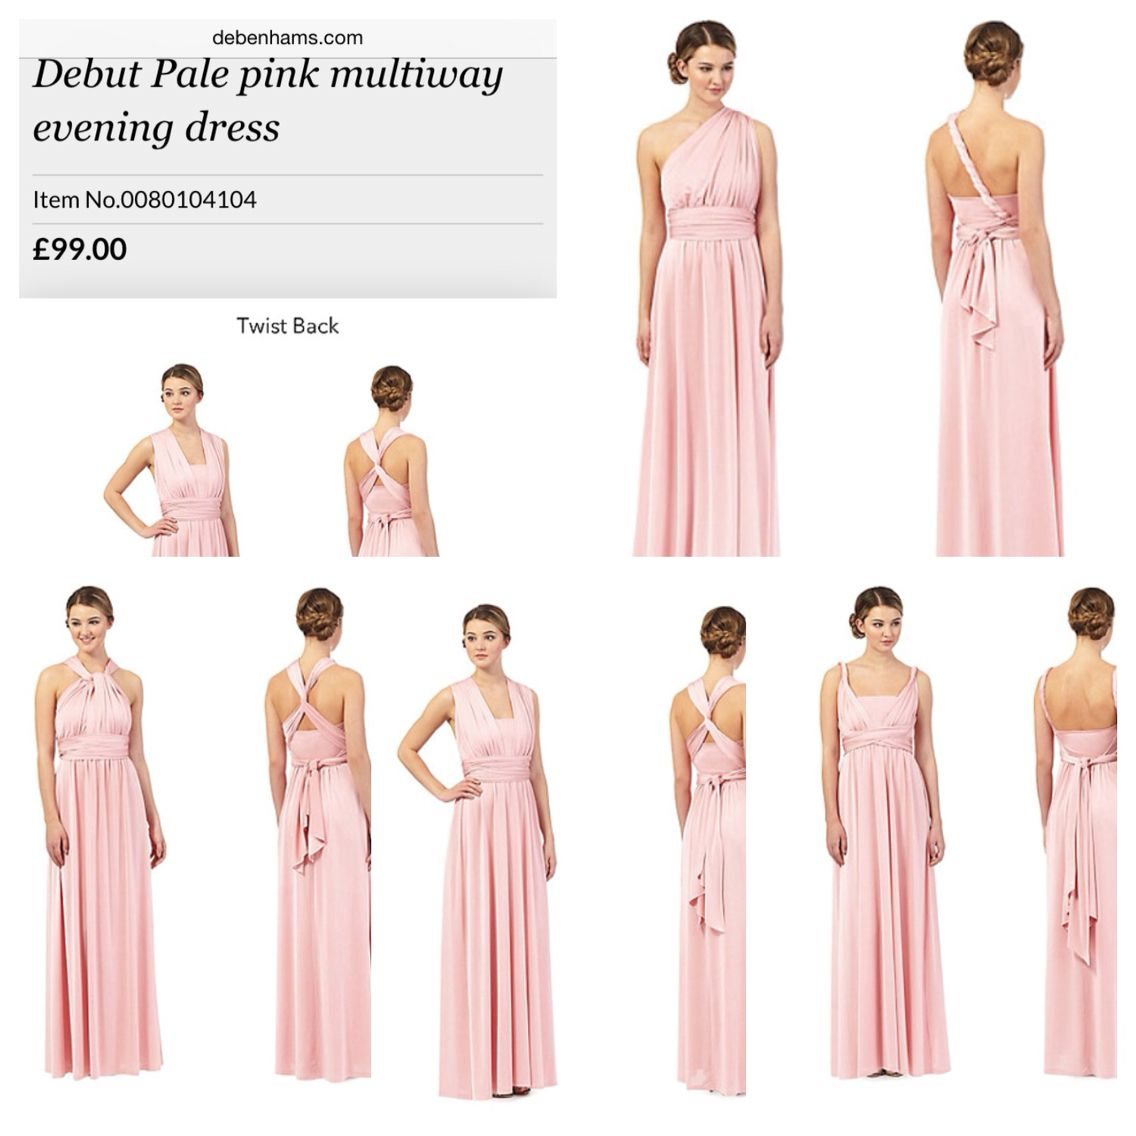 c0d3d2e4a6e42 Debut pale pink multi way bridesmaid dress- Debenhams | Outfit ideas ...